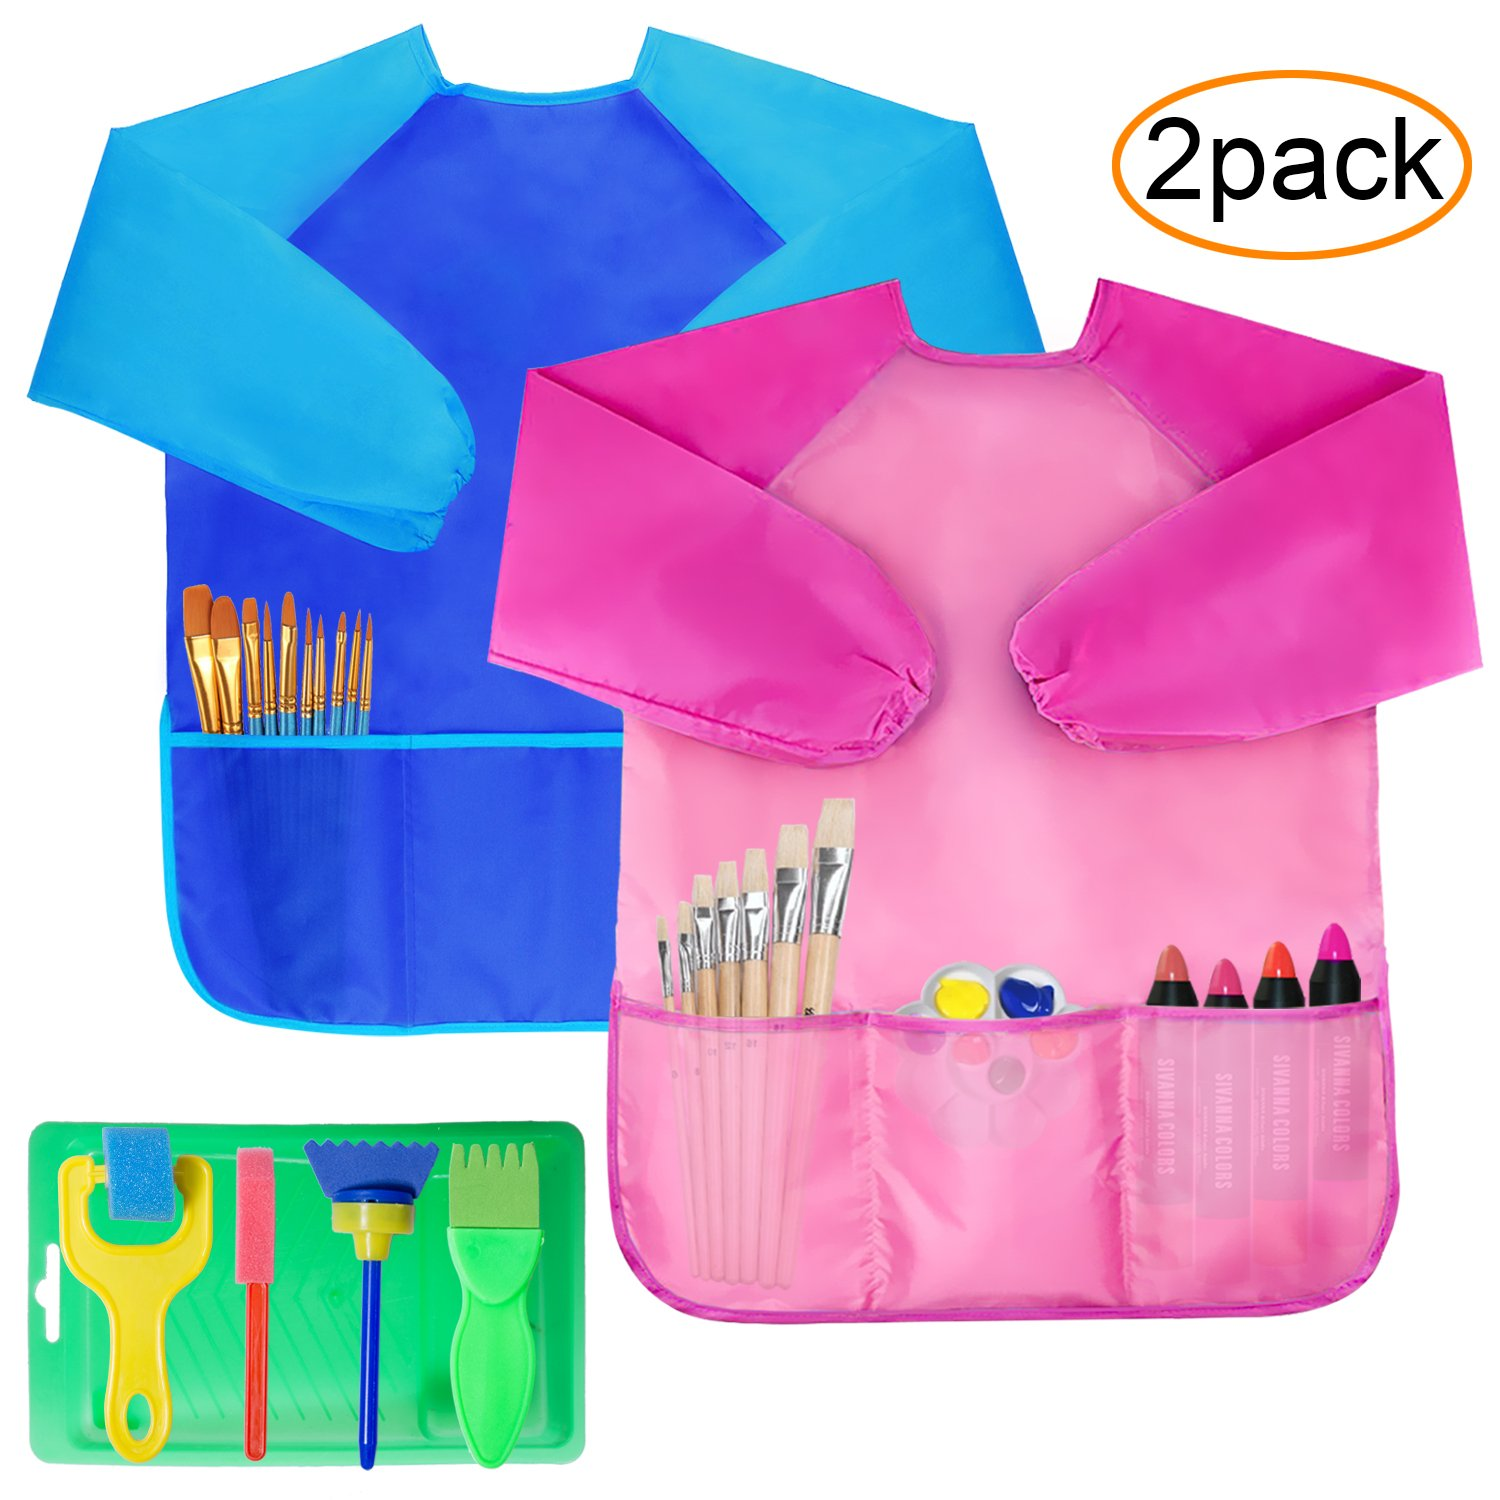 Fullsexy 2 Pack Kids Art Smocks, Children Waterproof Artist Painting Aprons Long Sleeve with 3 Pockets, Including Kids Sponge Painting Brushes Kit